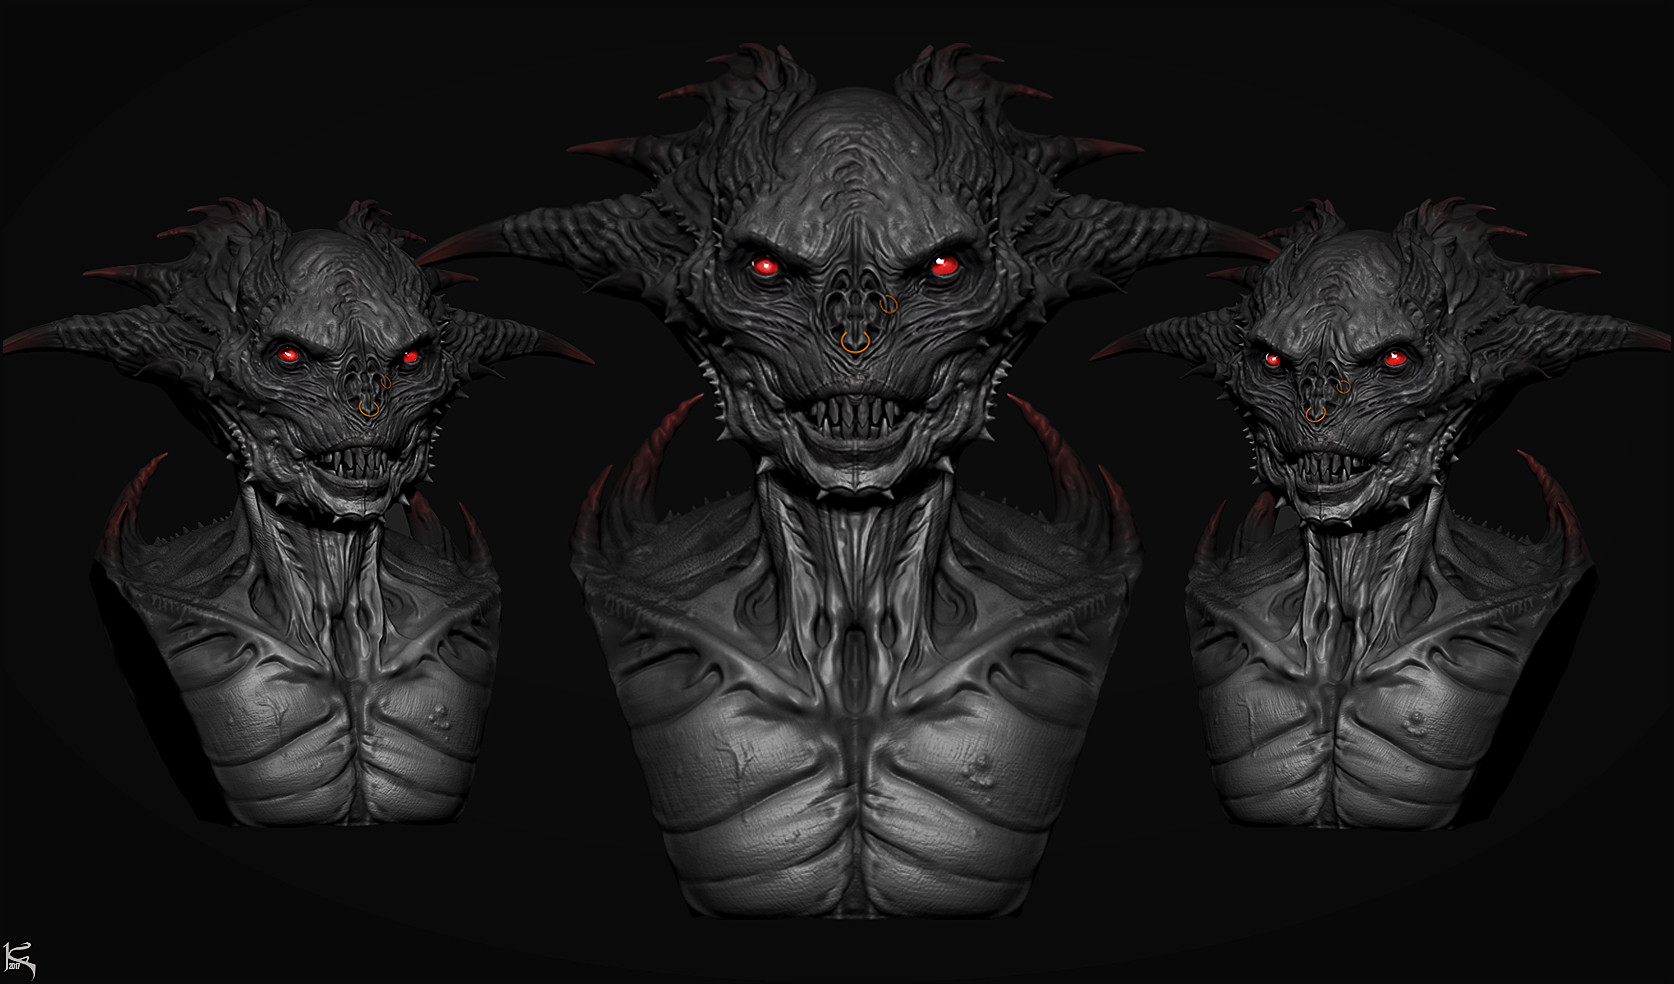 kenny-carmody-creature42-zbrush-screengrab.jpg